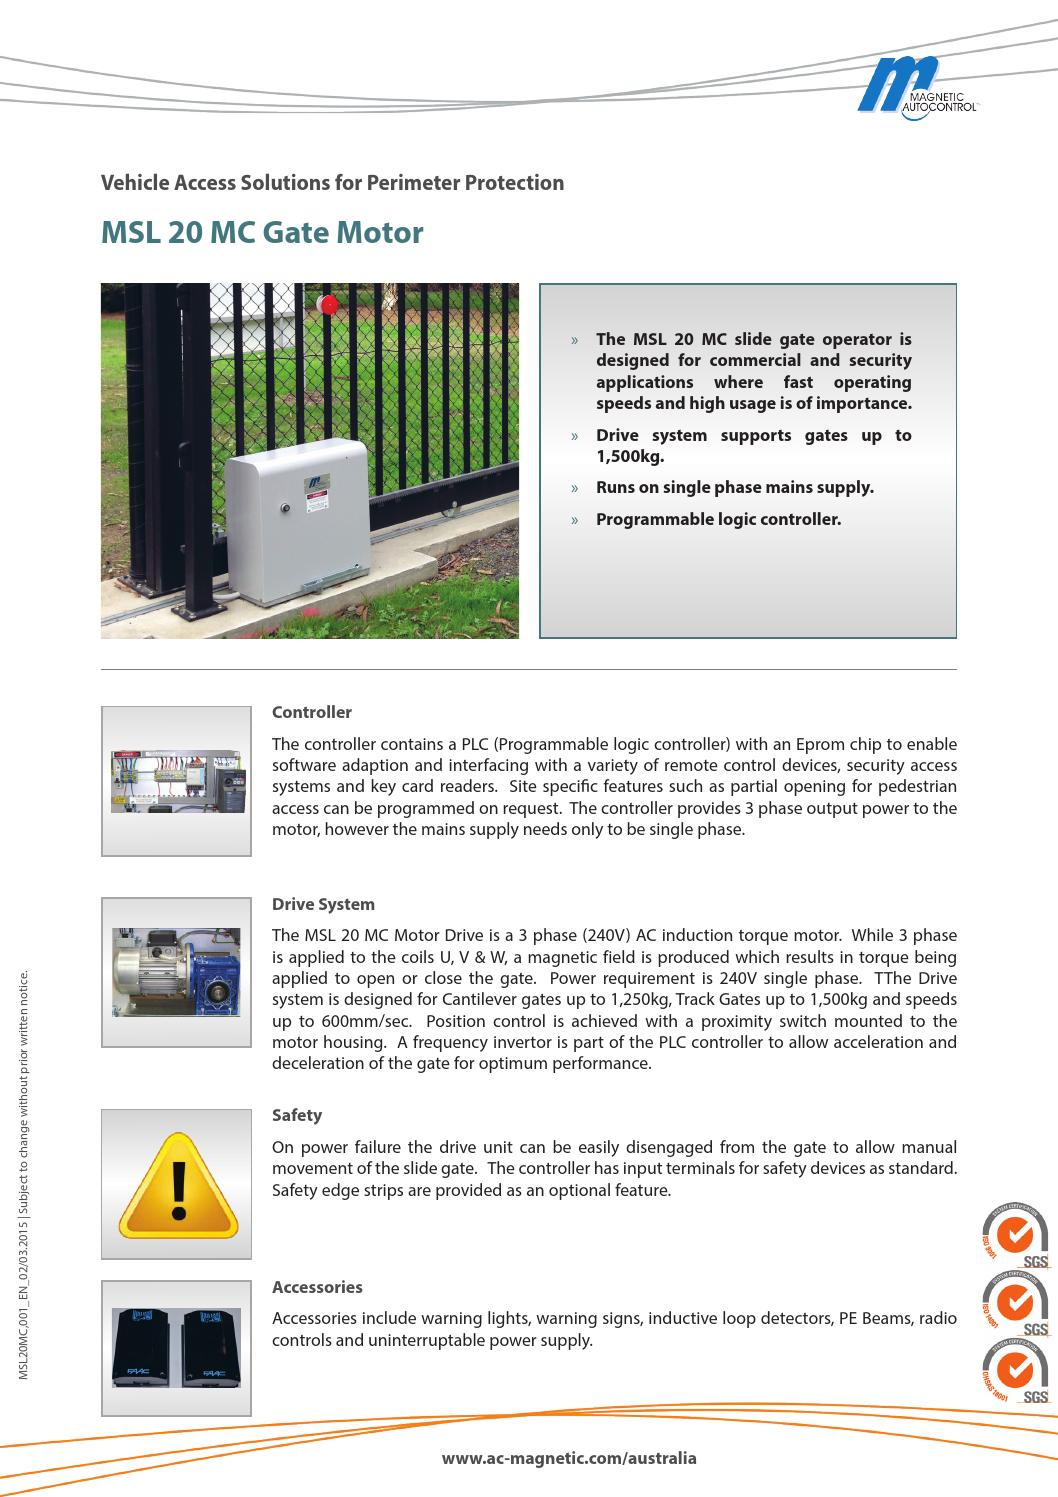 Msl 20mc gate motor ds 03 15 by Magnetic Automation Pty Ltd